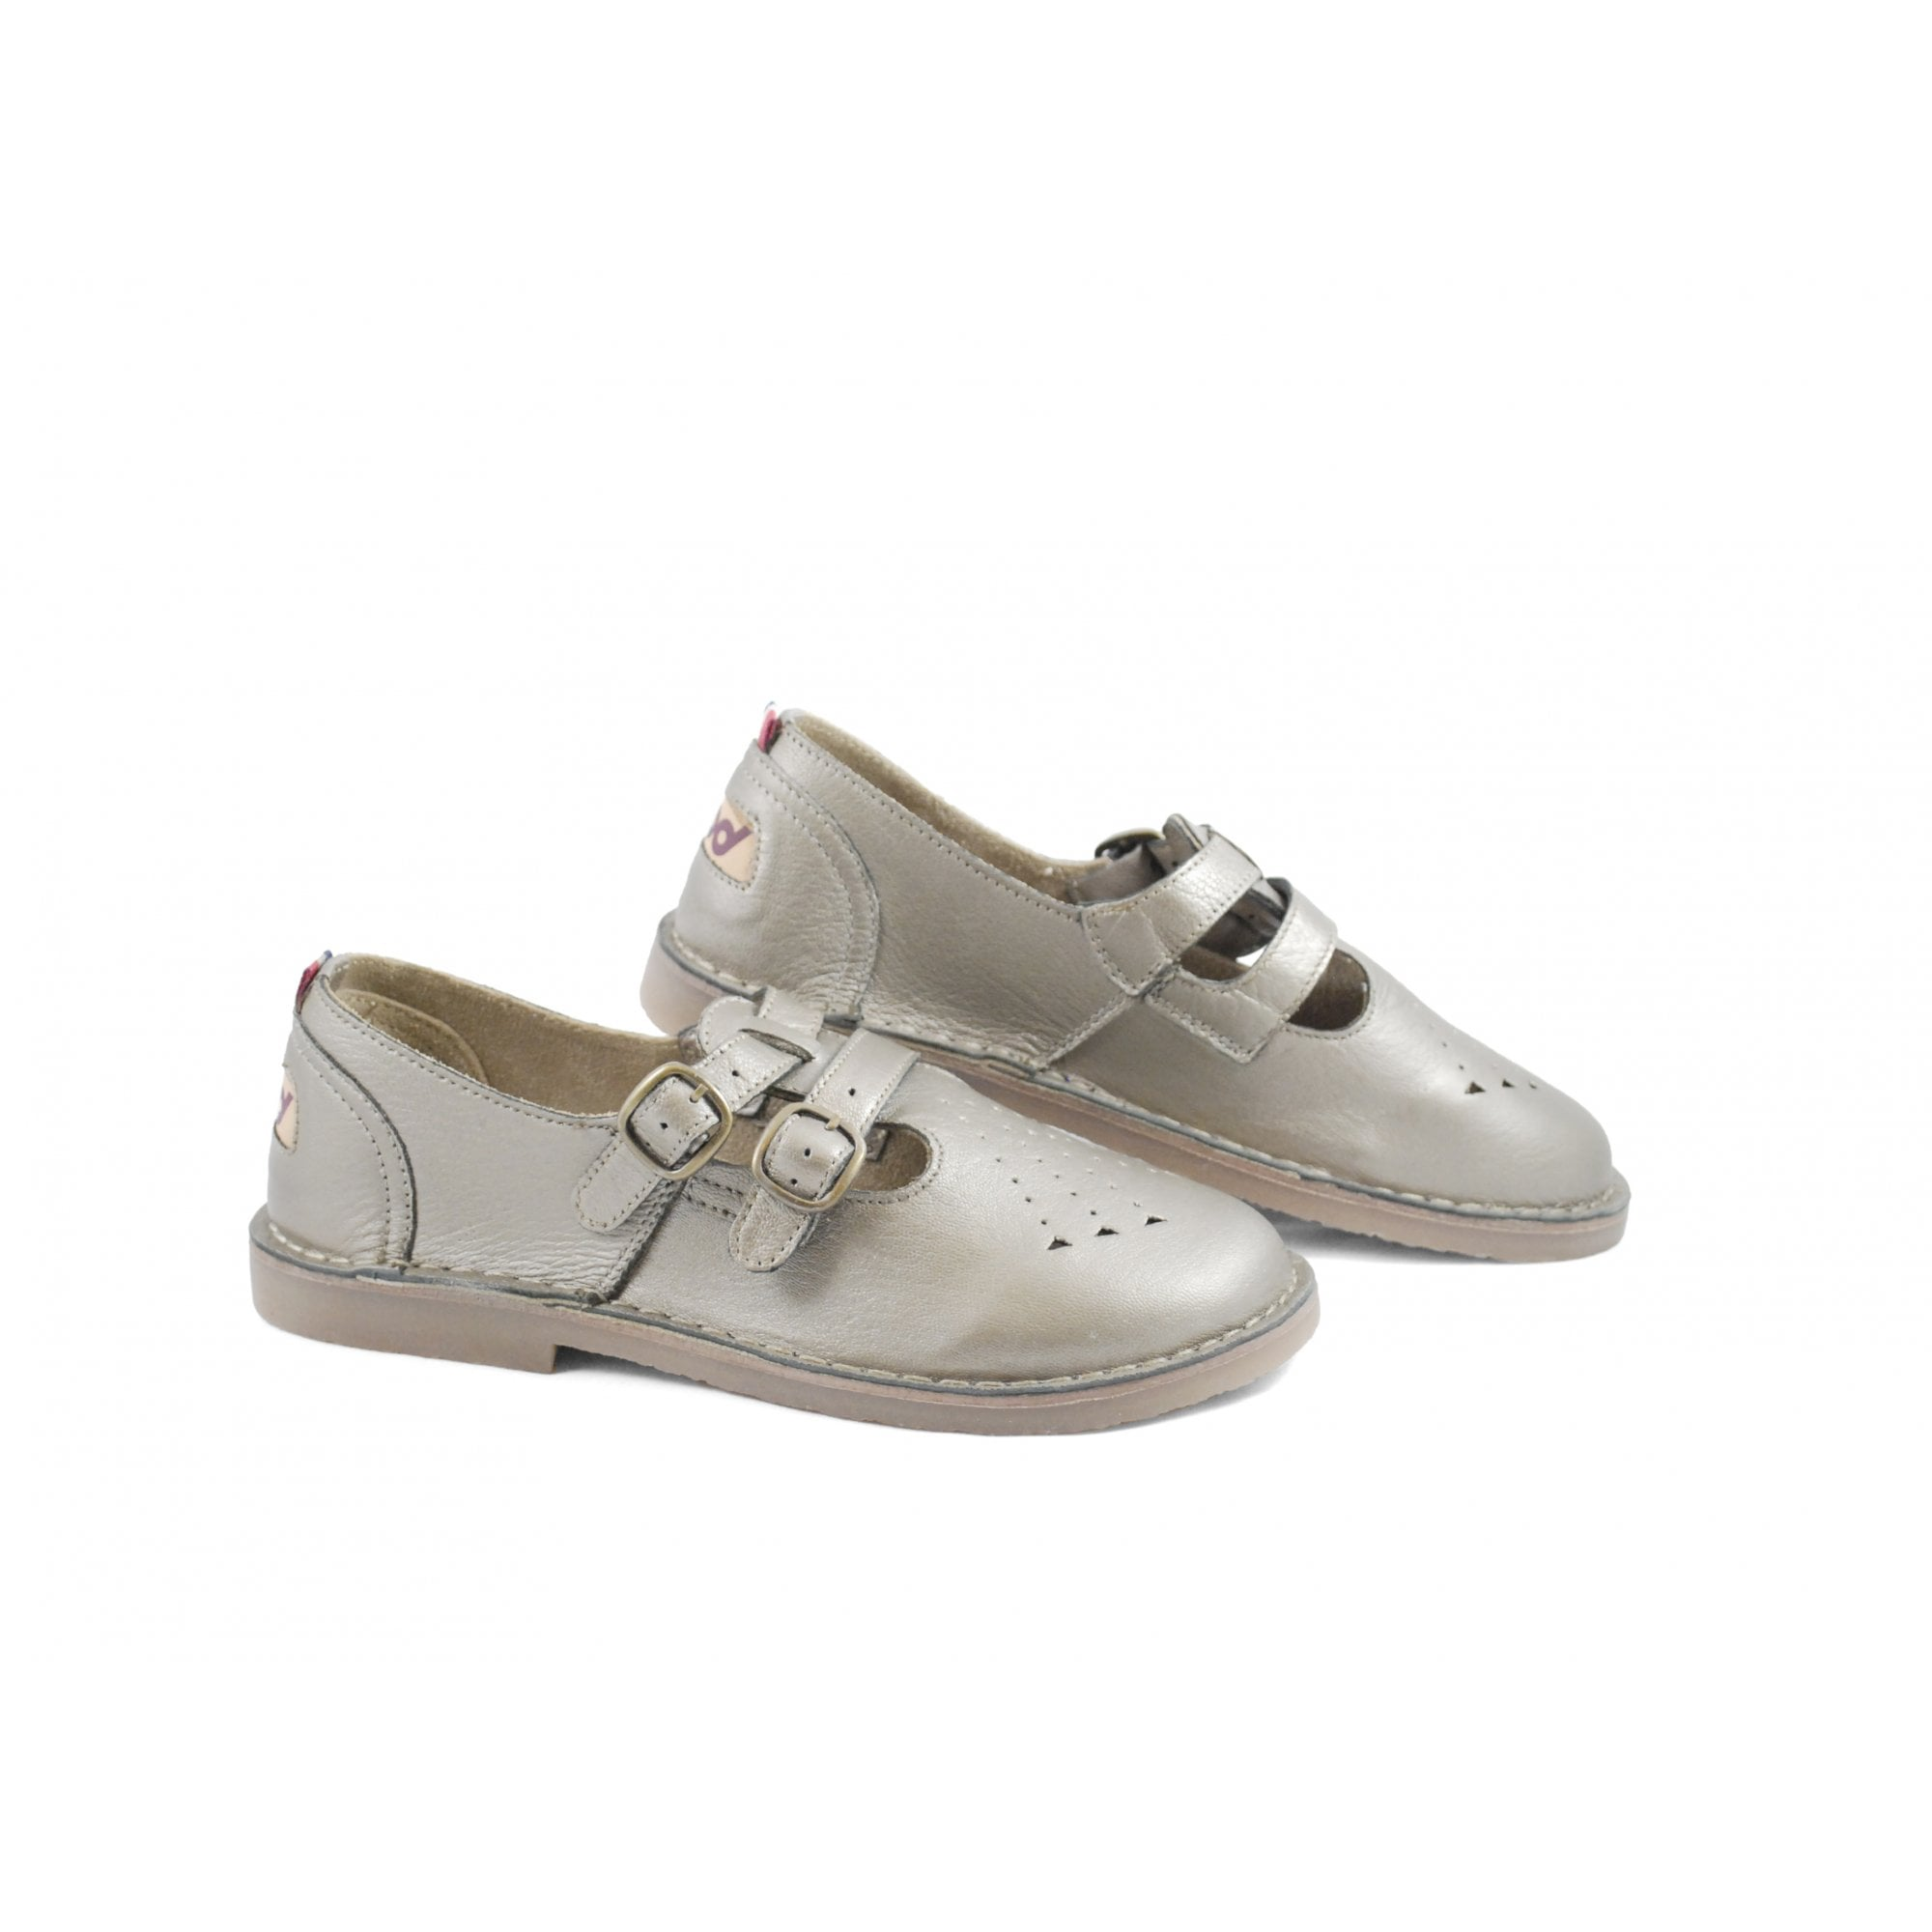 Pod Heritage Ladies Marley White T-Bar Sandals Retro Flat Shoes New